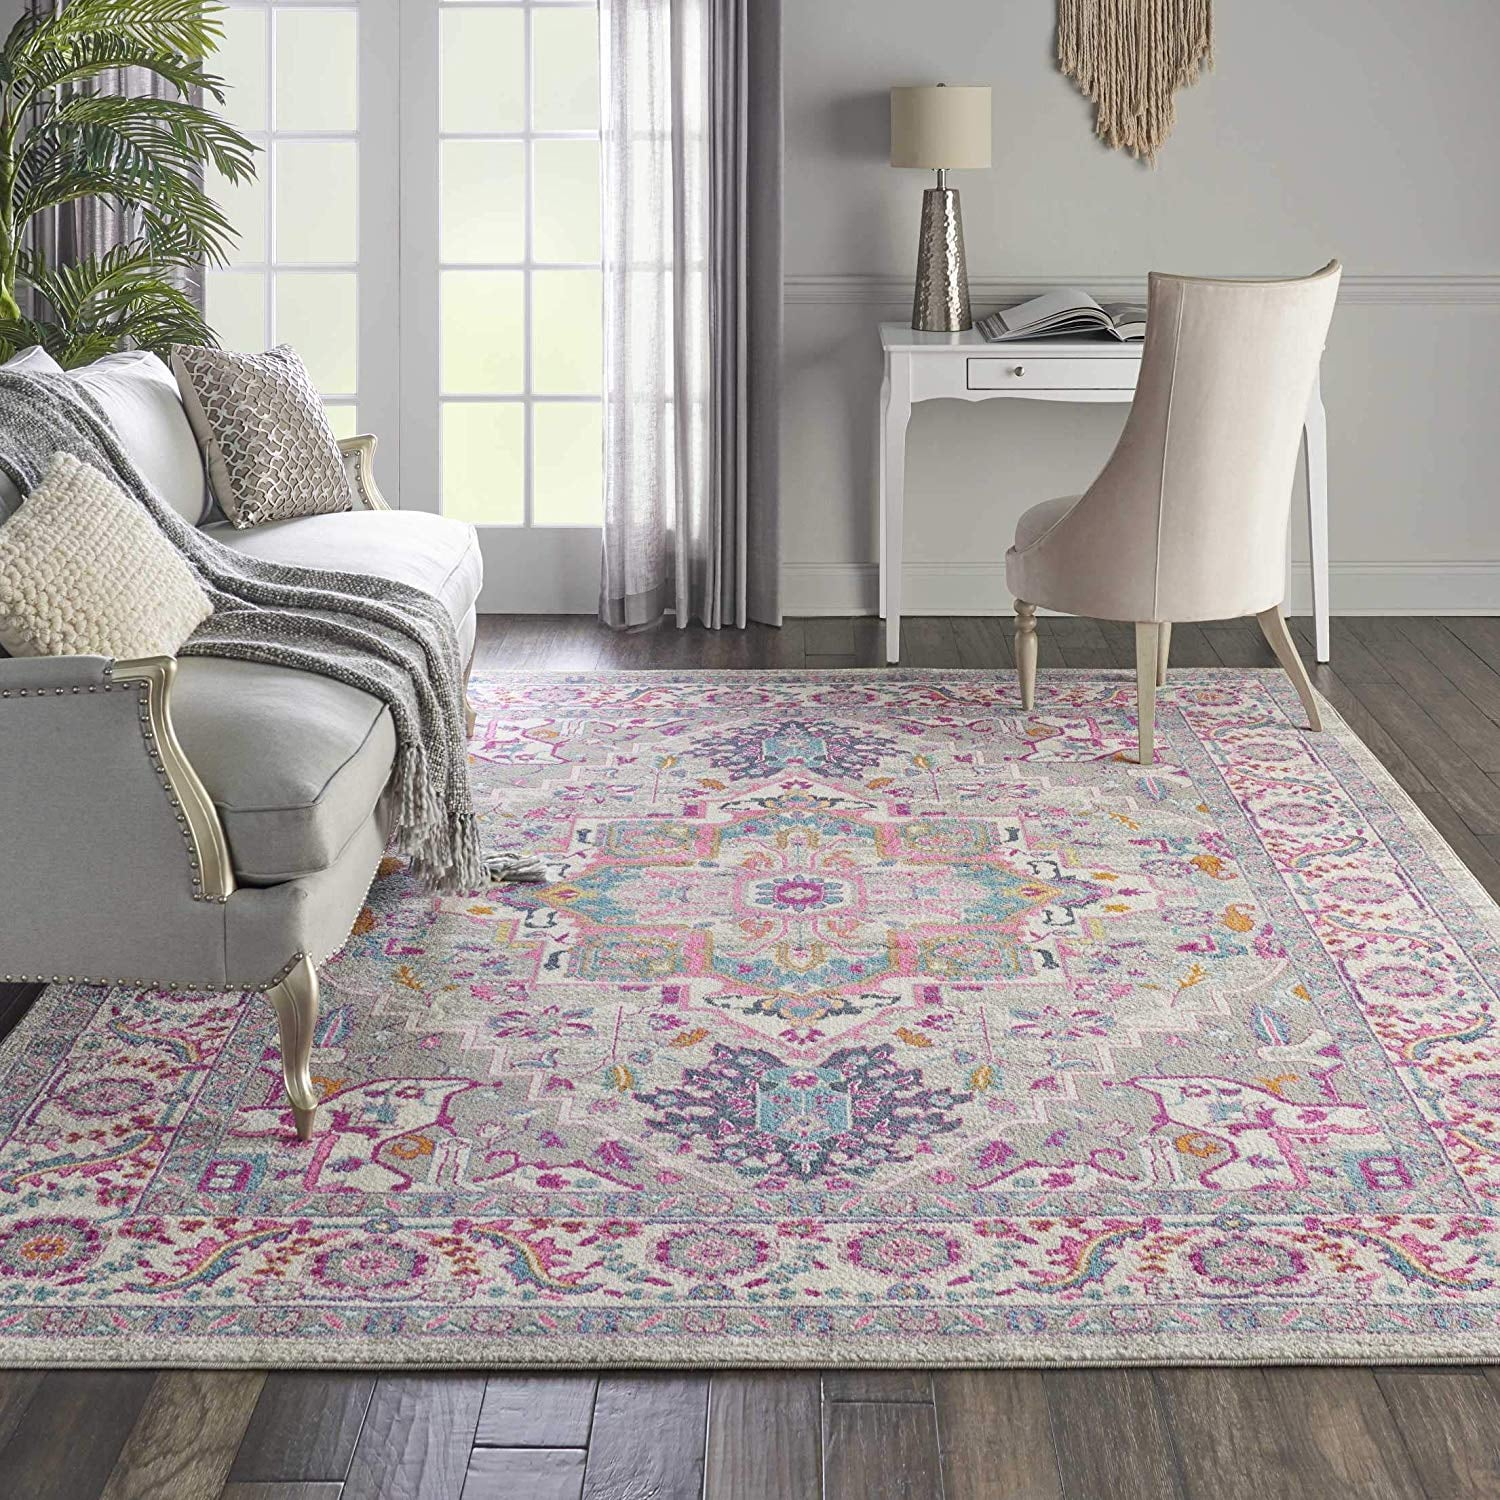 Best Cheap Area Rugs From Amazon Popsugar Home